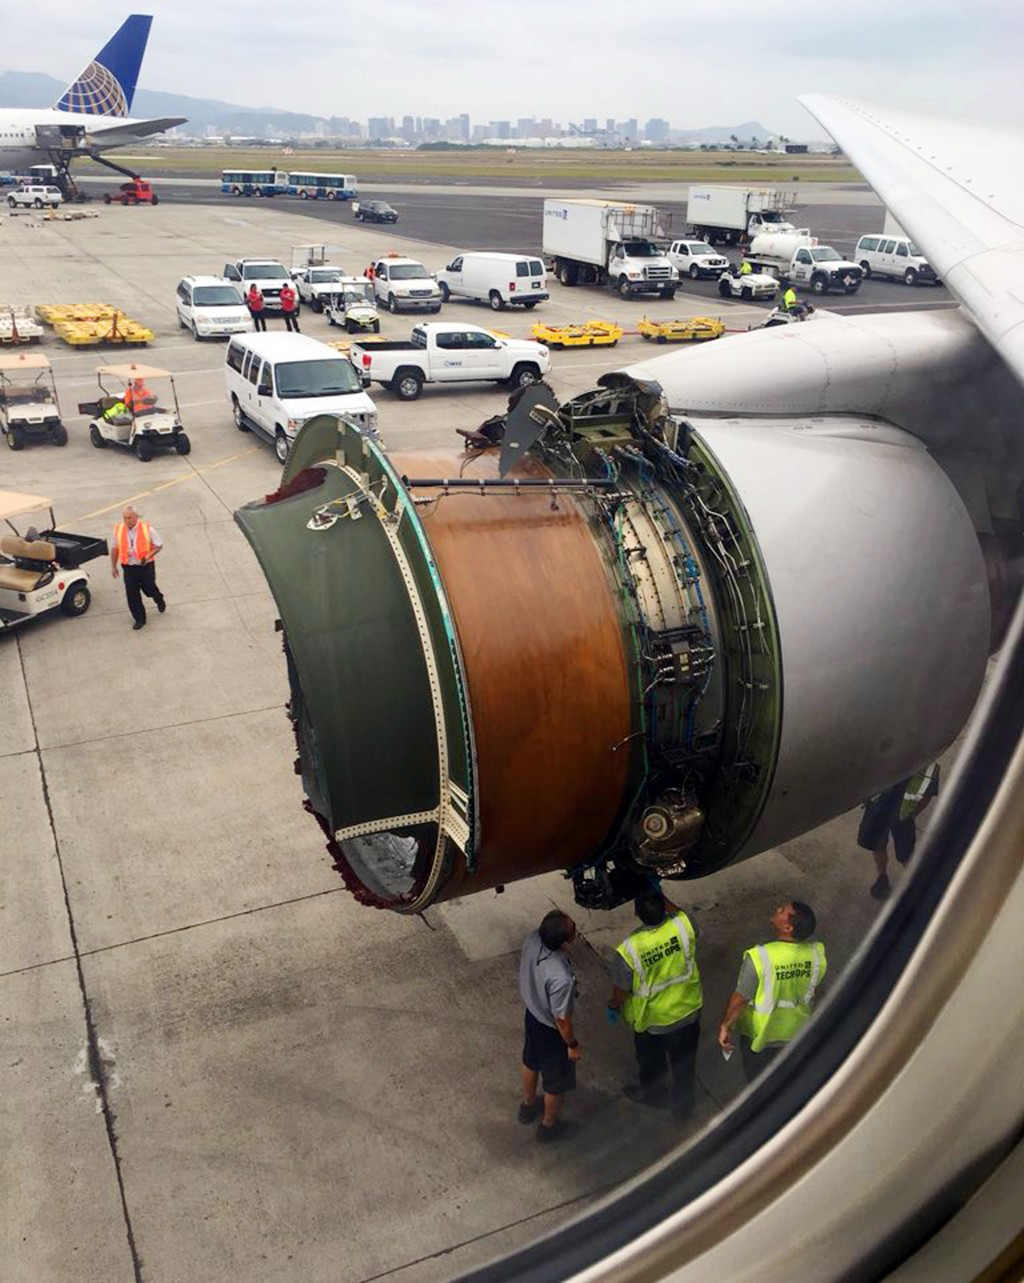 This photo provided by passenger Haley Ebert shows damage to an engine on what the FAA says is a Boeing 777 after parts came off the jetliner during i